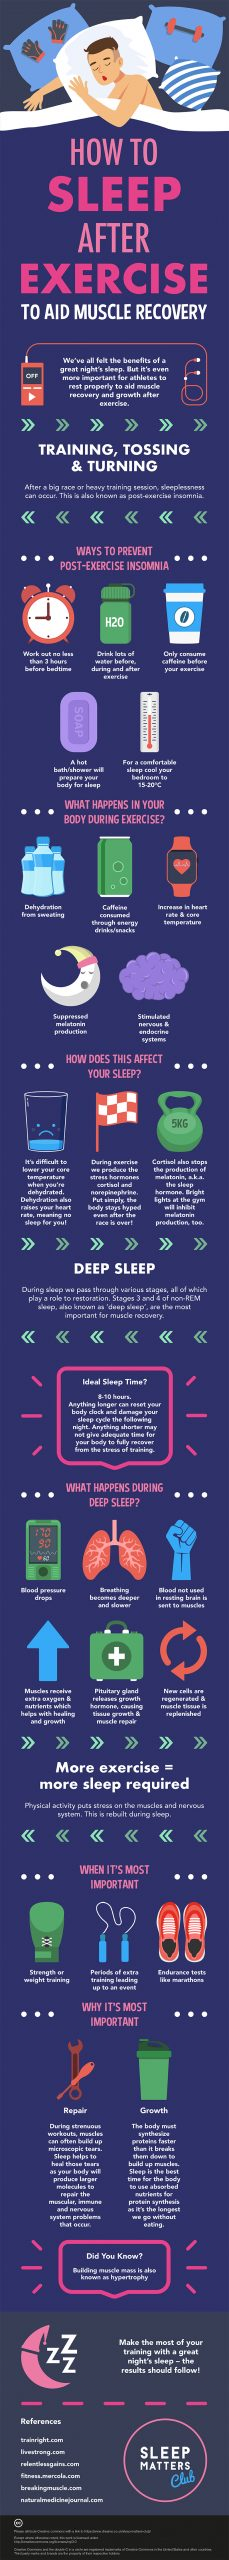 How To Sleep After Exercise To Aid Muscle Recovery Growth